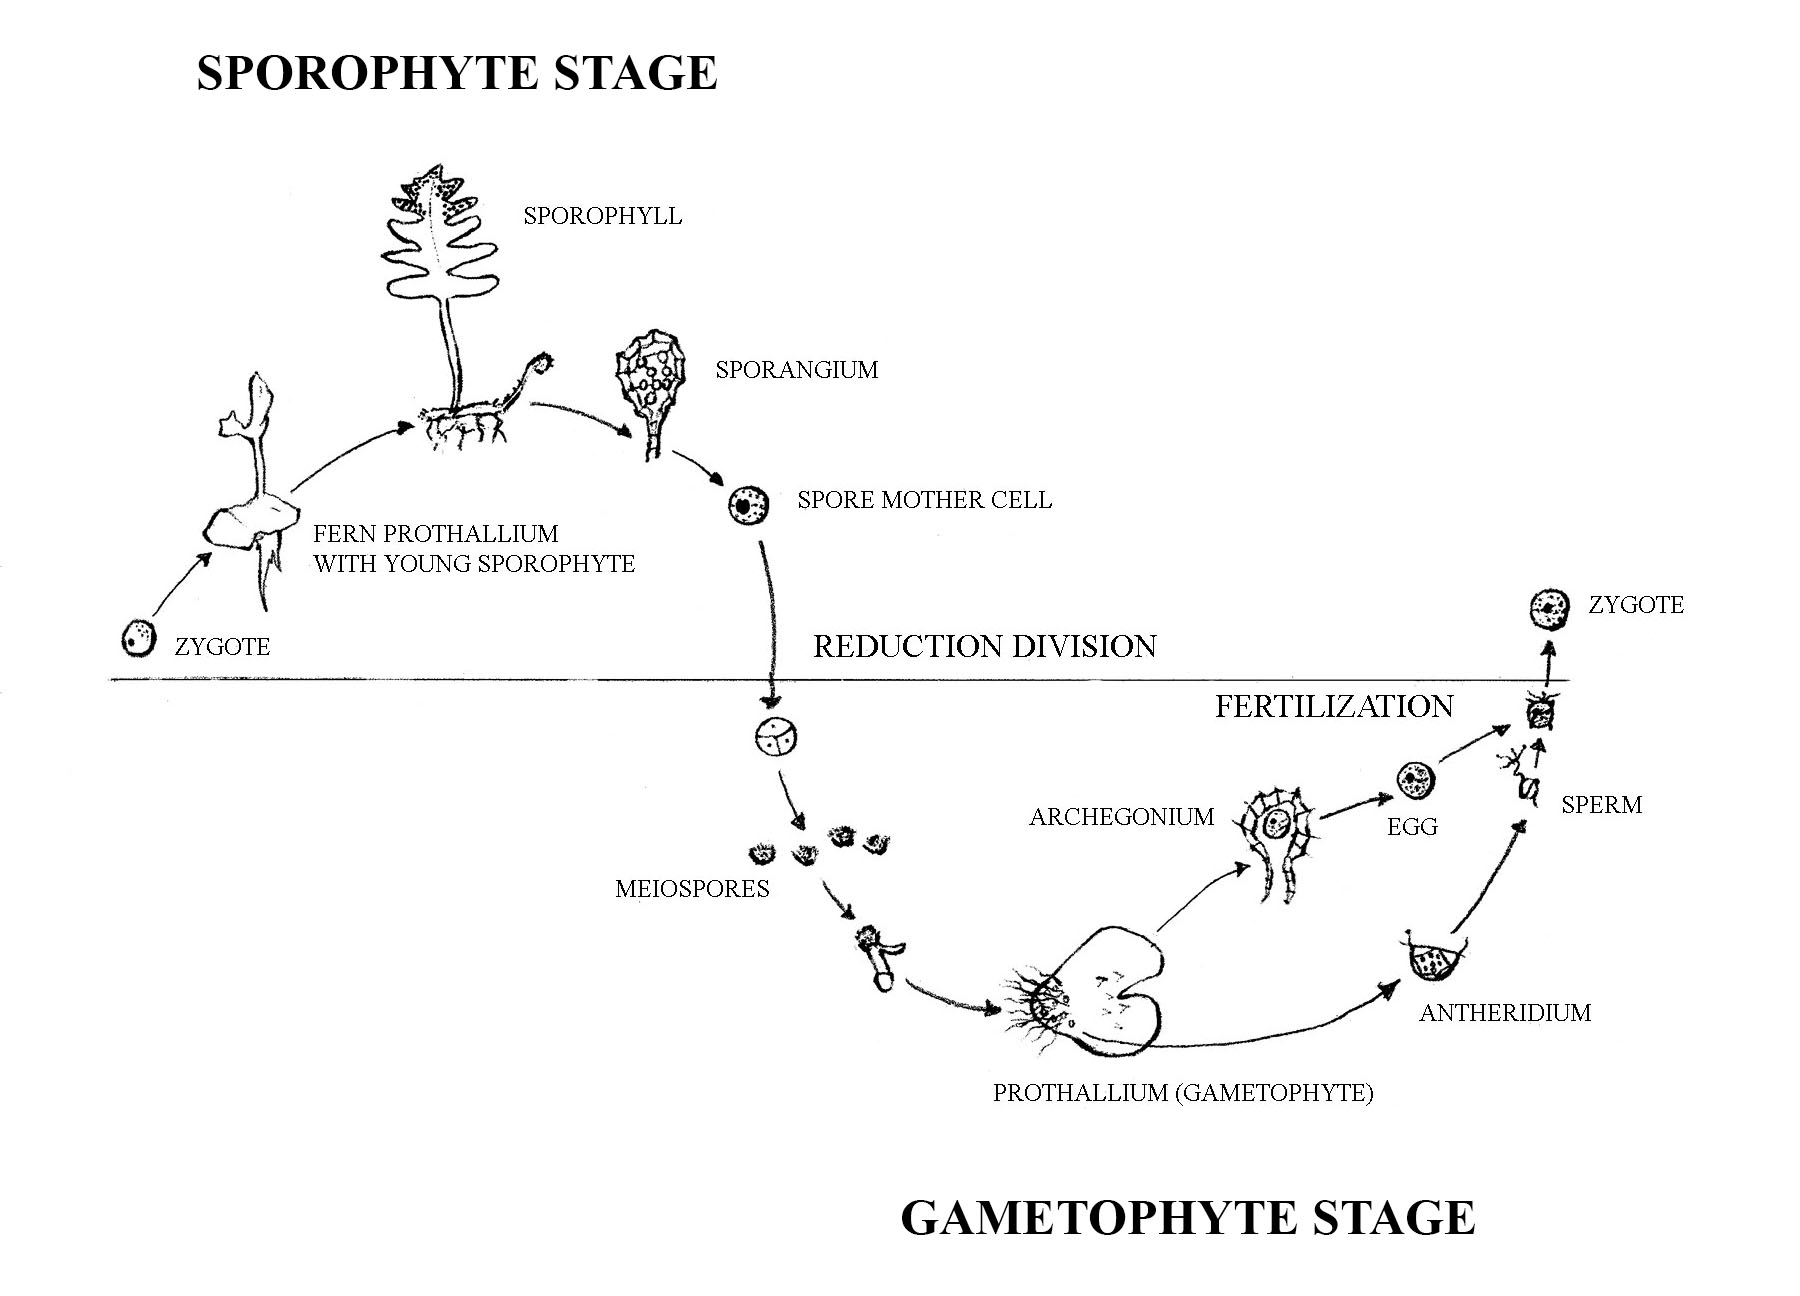 Fern life cycle. Sporophyte stage: Zygote to fern prothallium with young sporophyte to sporophyll to sporangium to spore mother cell. Gametophyte stage: Reduction division to Mesospores to prothallium (gametophyte) to archegonium to egg and antheridium to sperm then to fertilization.